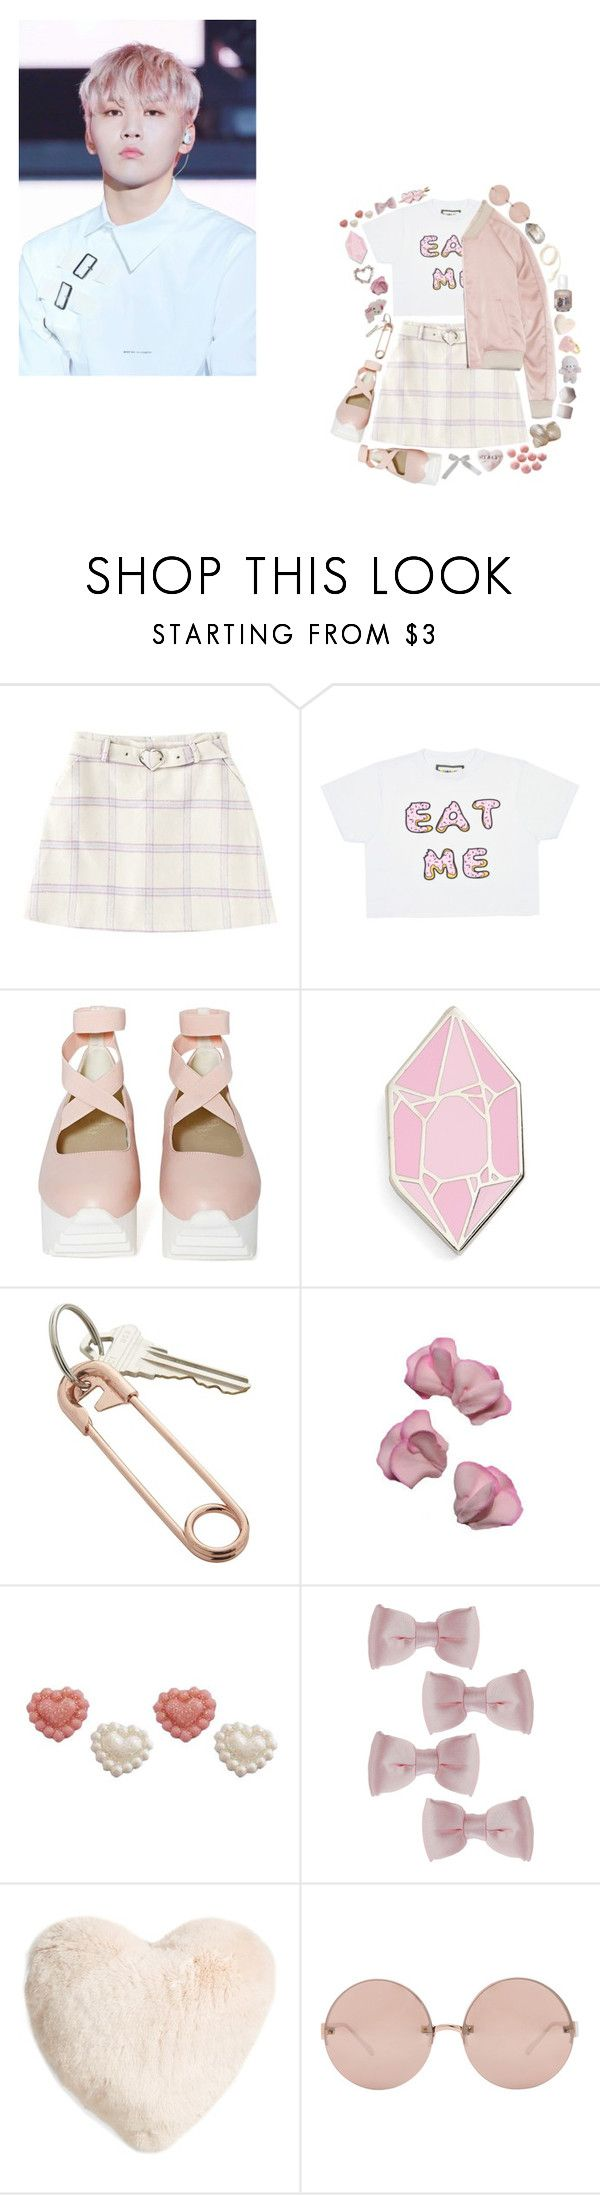 """Shining Diamond - Seventeen"" by choiseungcheols ❤ liked on Polyvore featuring UNIF, Big Bud Press, CB2, Sweet Pea by Stacy Frati, Topshop, Nordstrom and Linda Farrow"